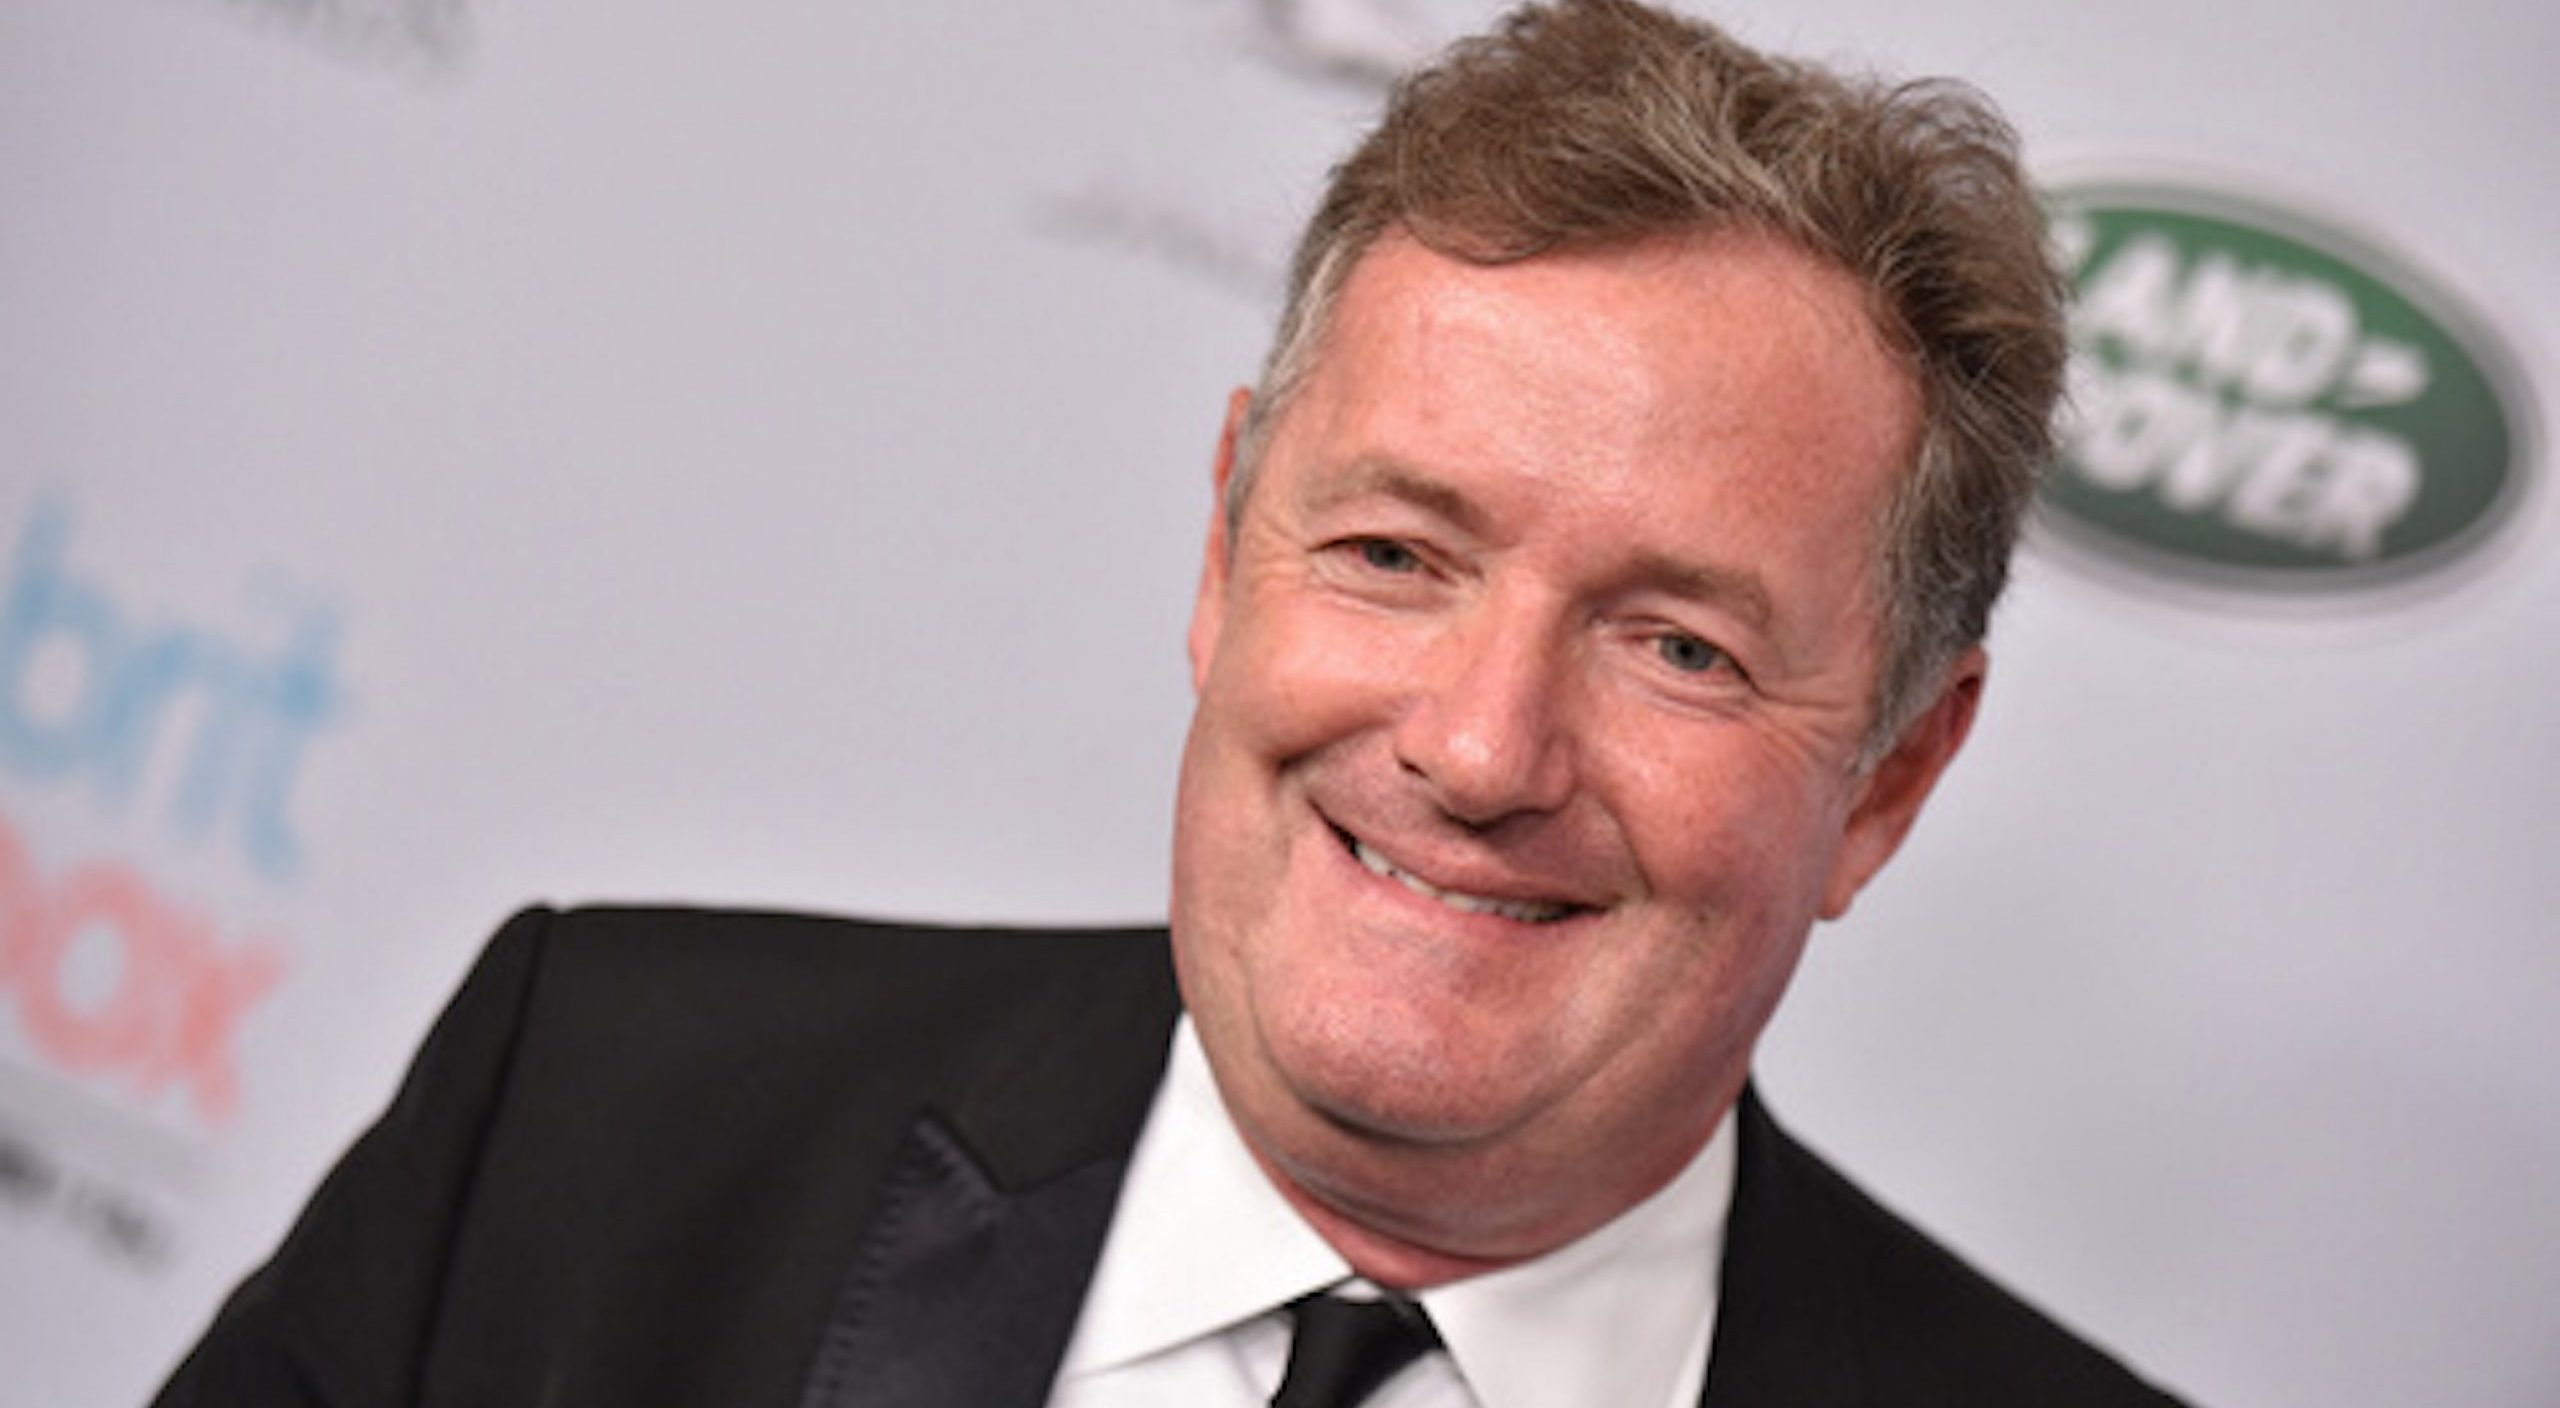 Piers Morgan reveals final text exchange with Caroline Flack about 'throwing her phone'